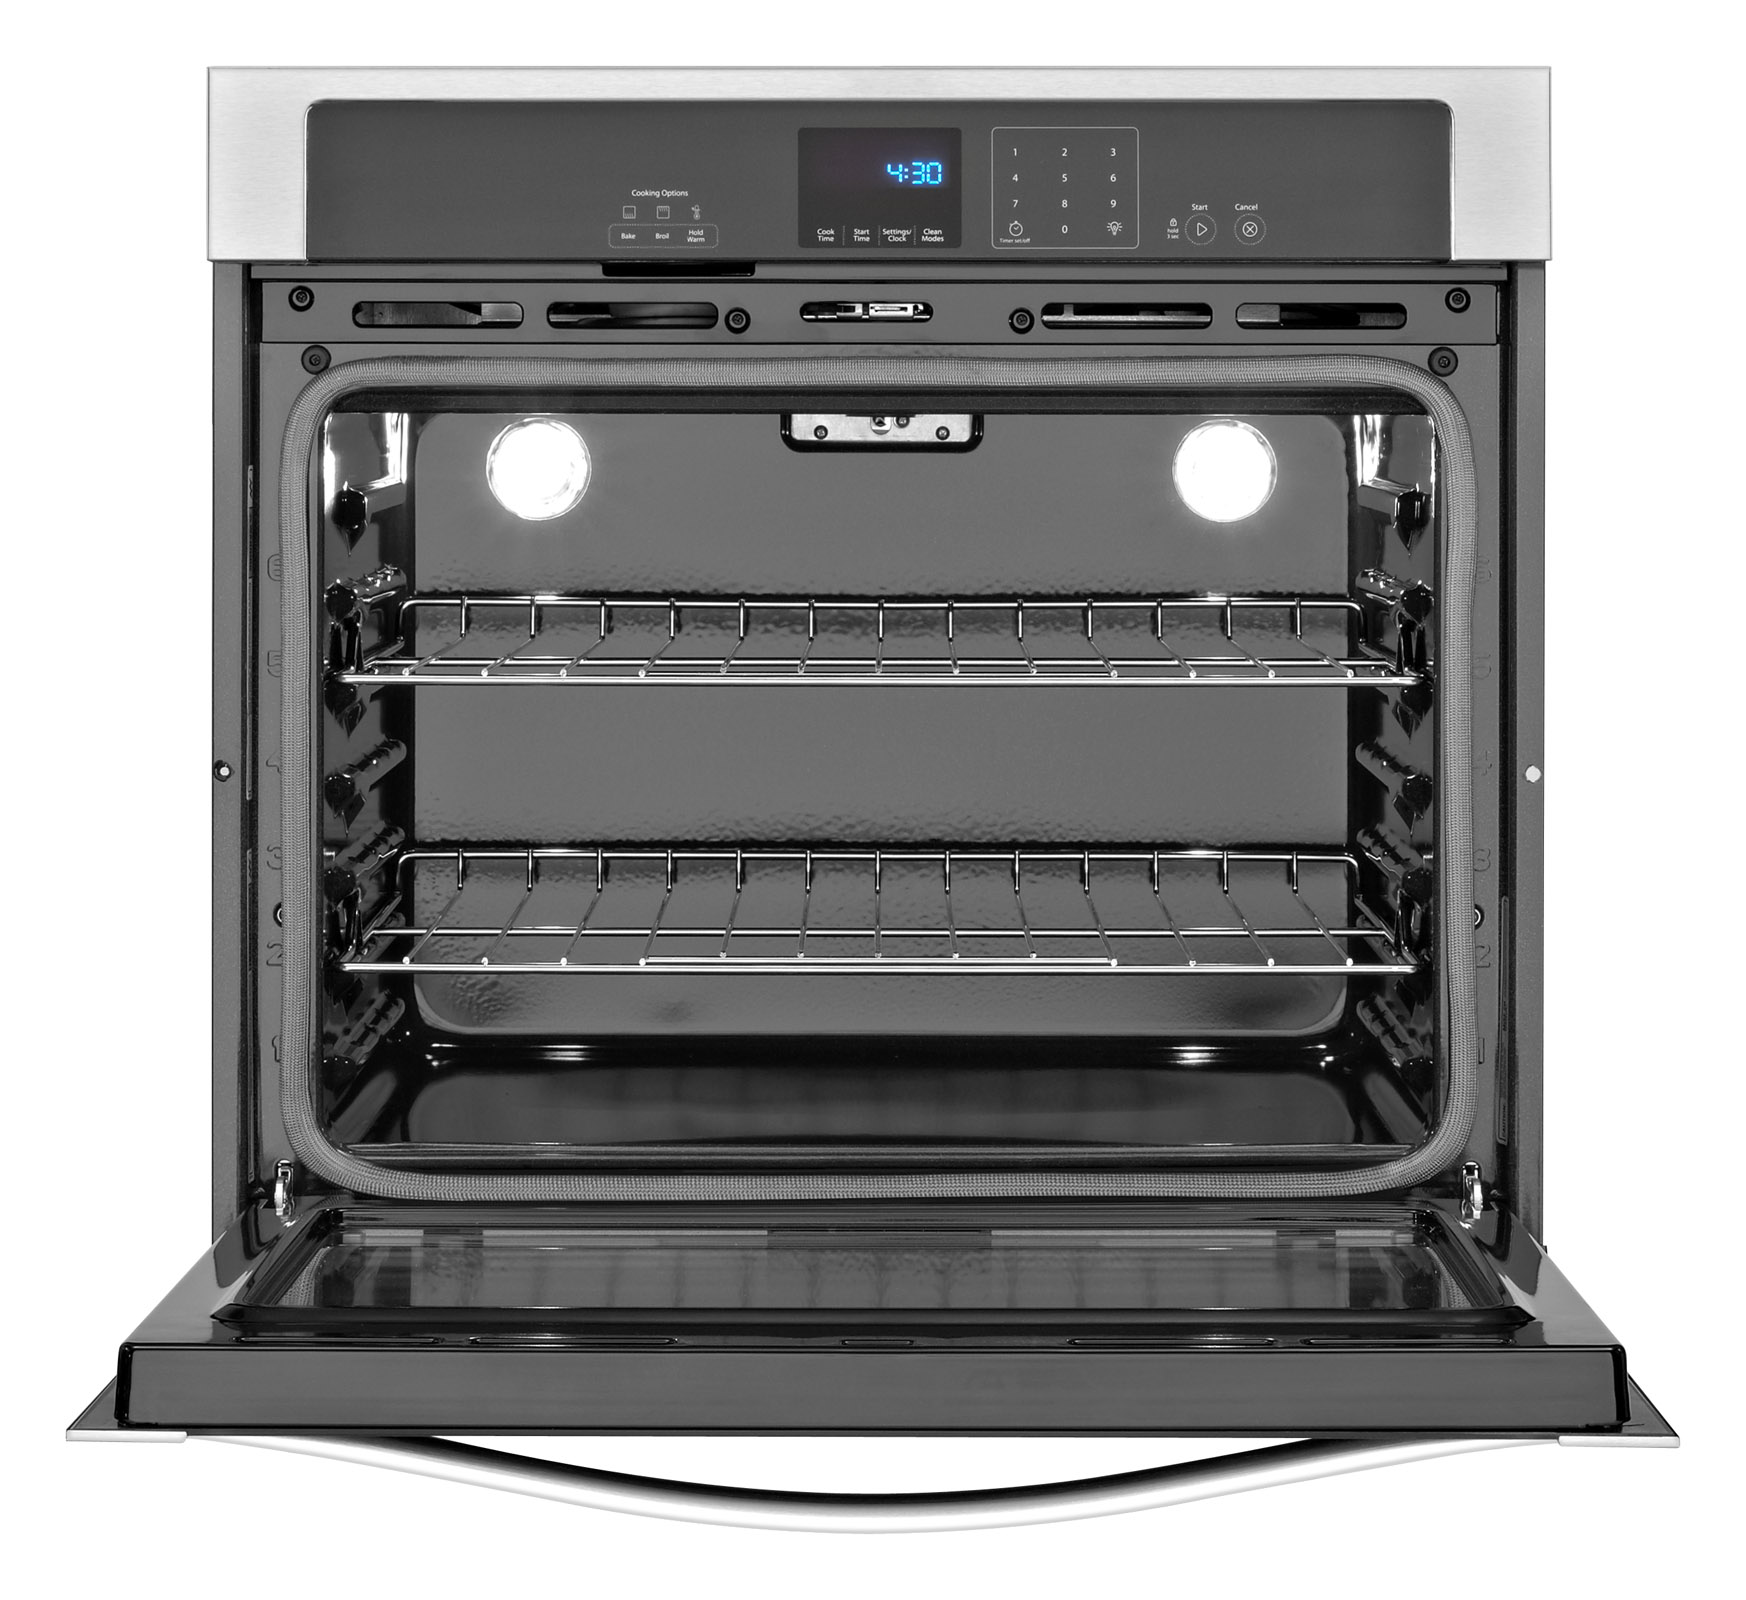 "Whirlpool WOS51EC0AS 30"" Electric Wall Oven w/ SteamClean - Stainless Steel"